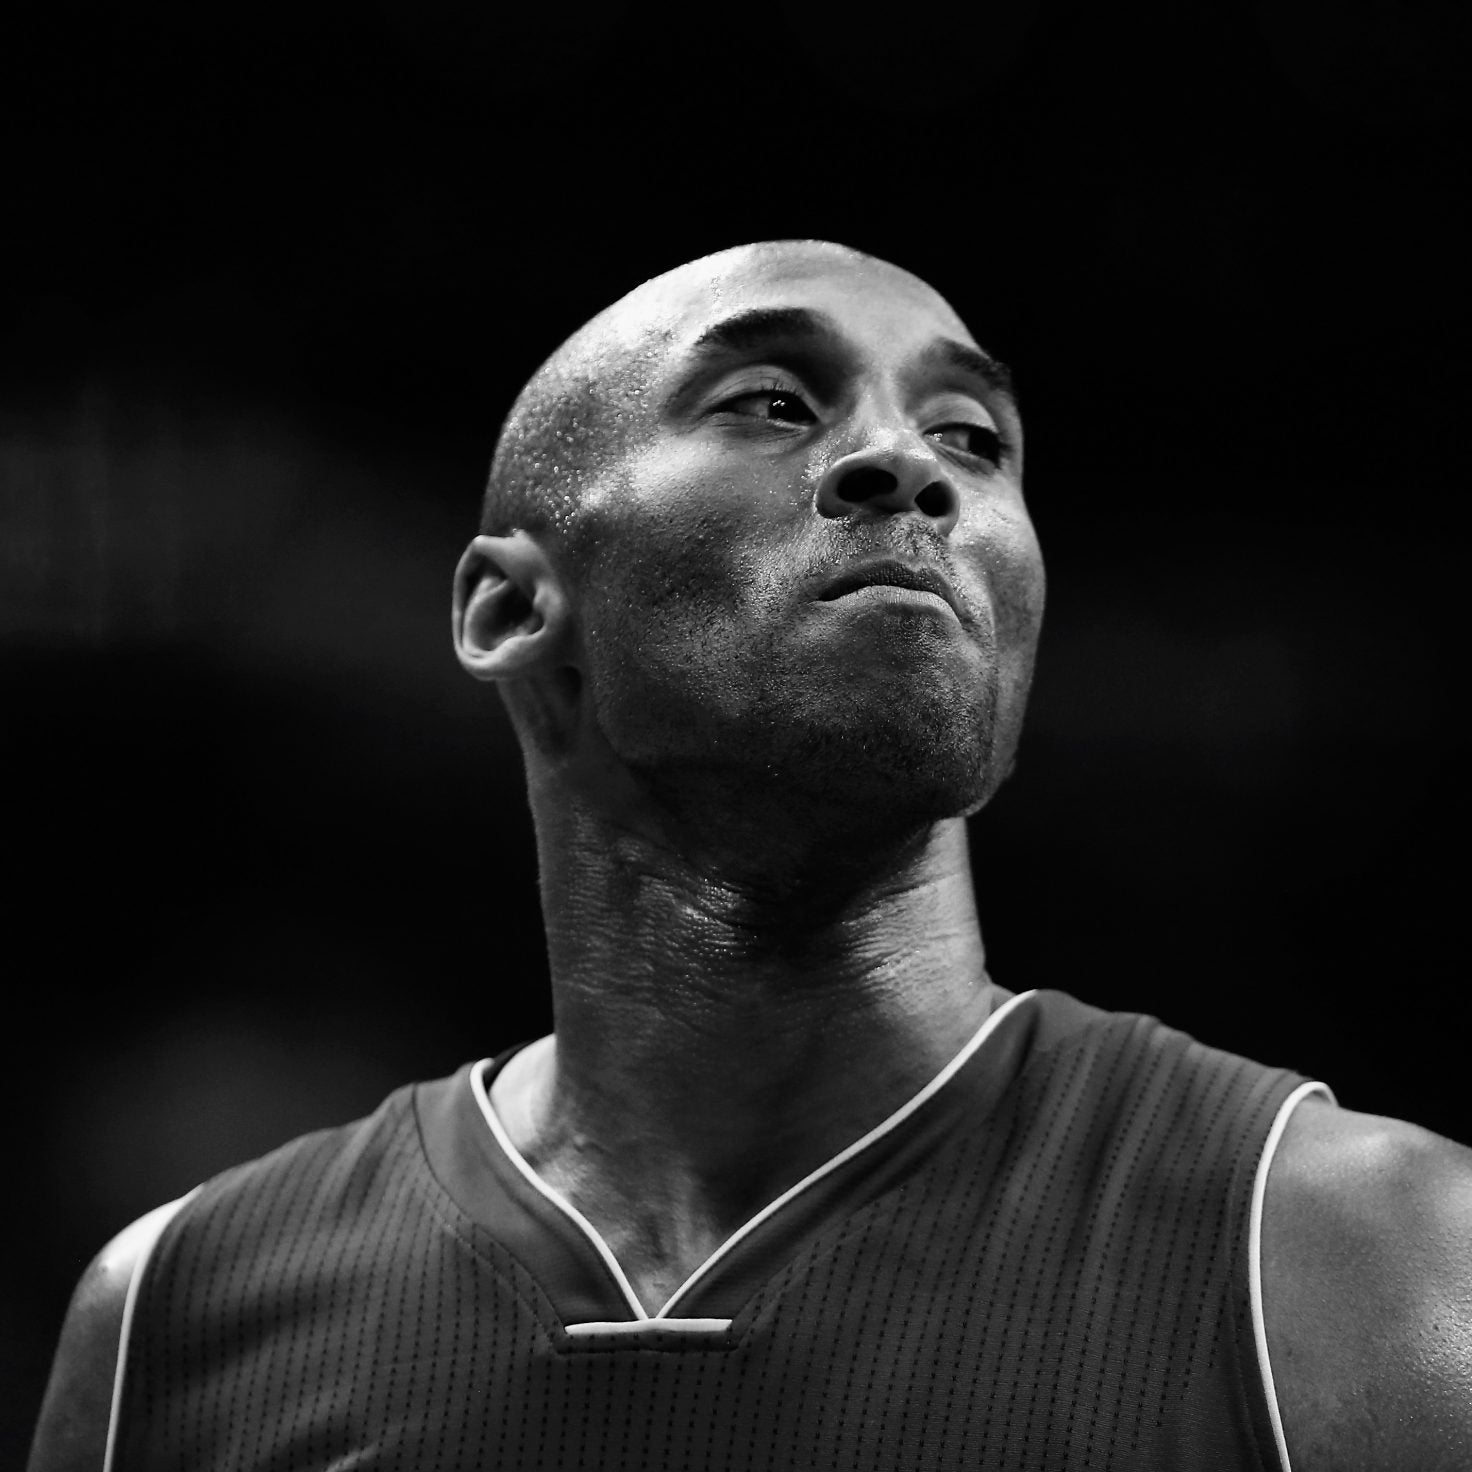 Celebrities Are In Shock After Kobe Bryant And His Daughter's Sudden Death In Helicopter Crash